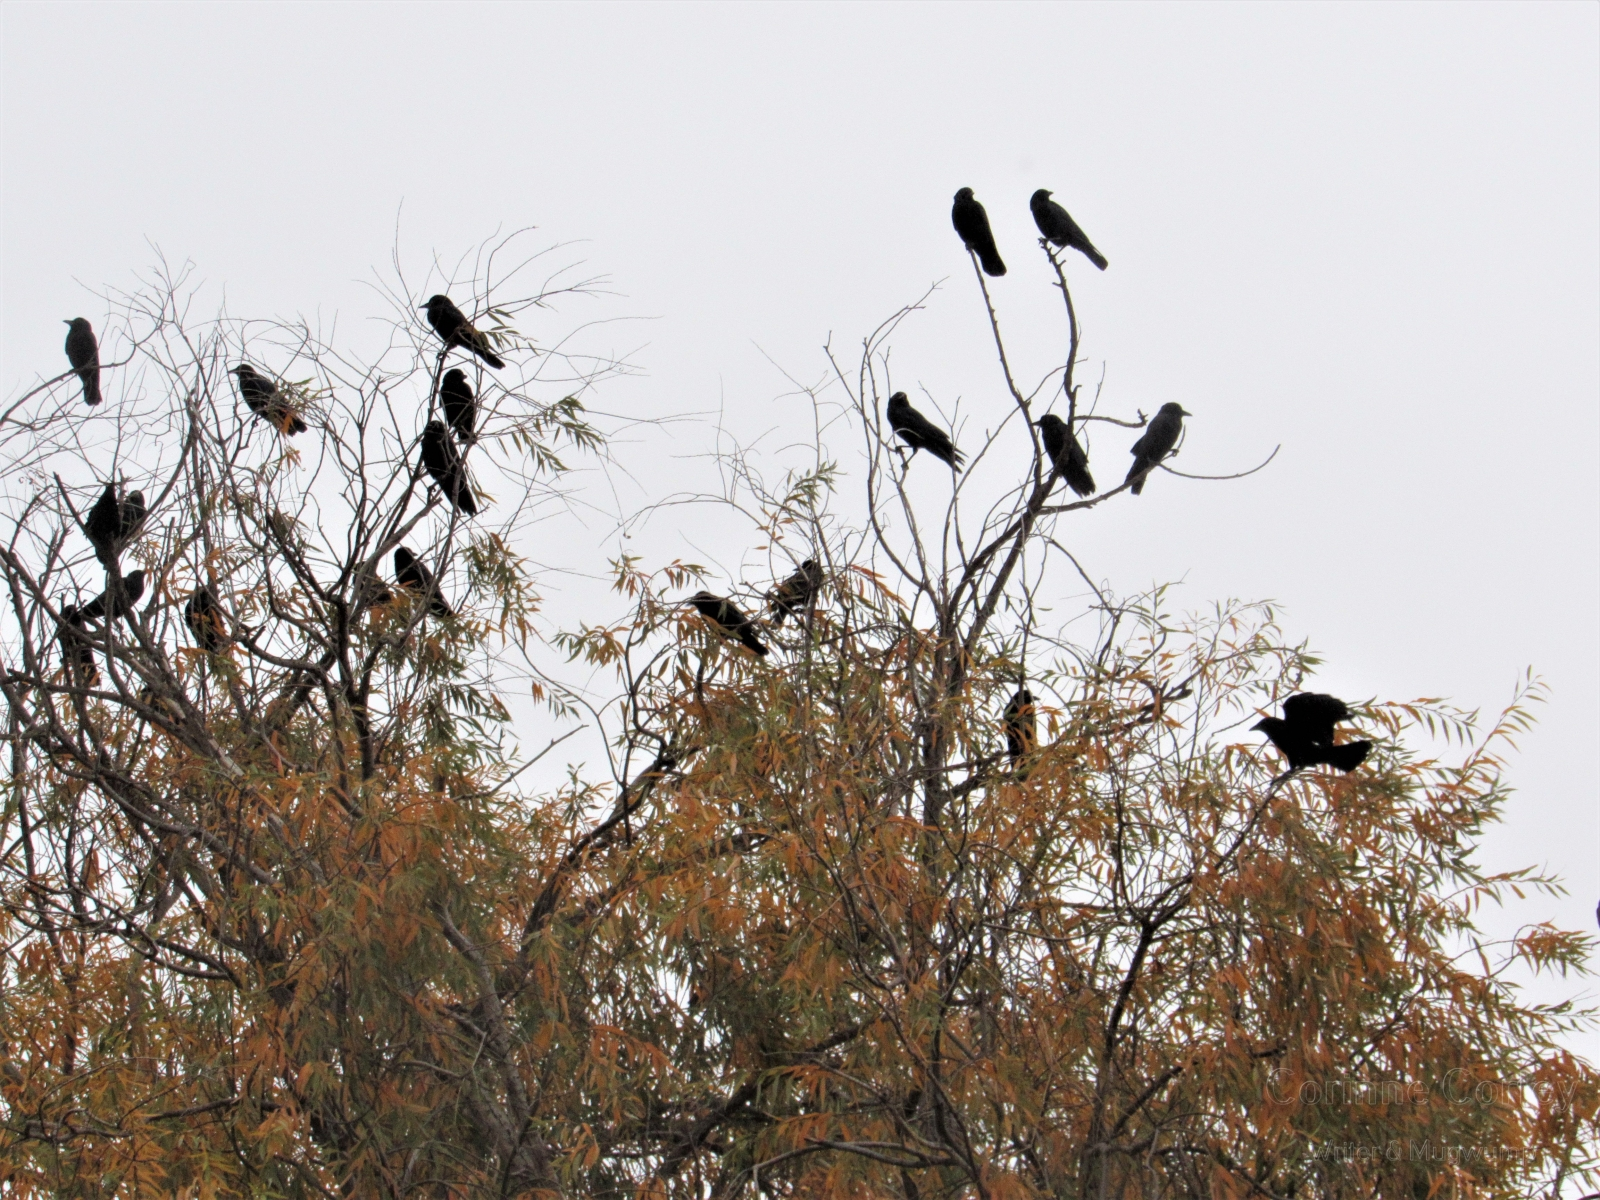 Crows-17